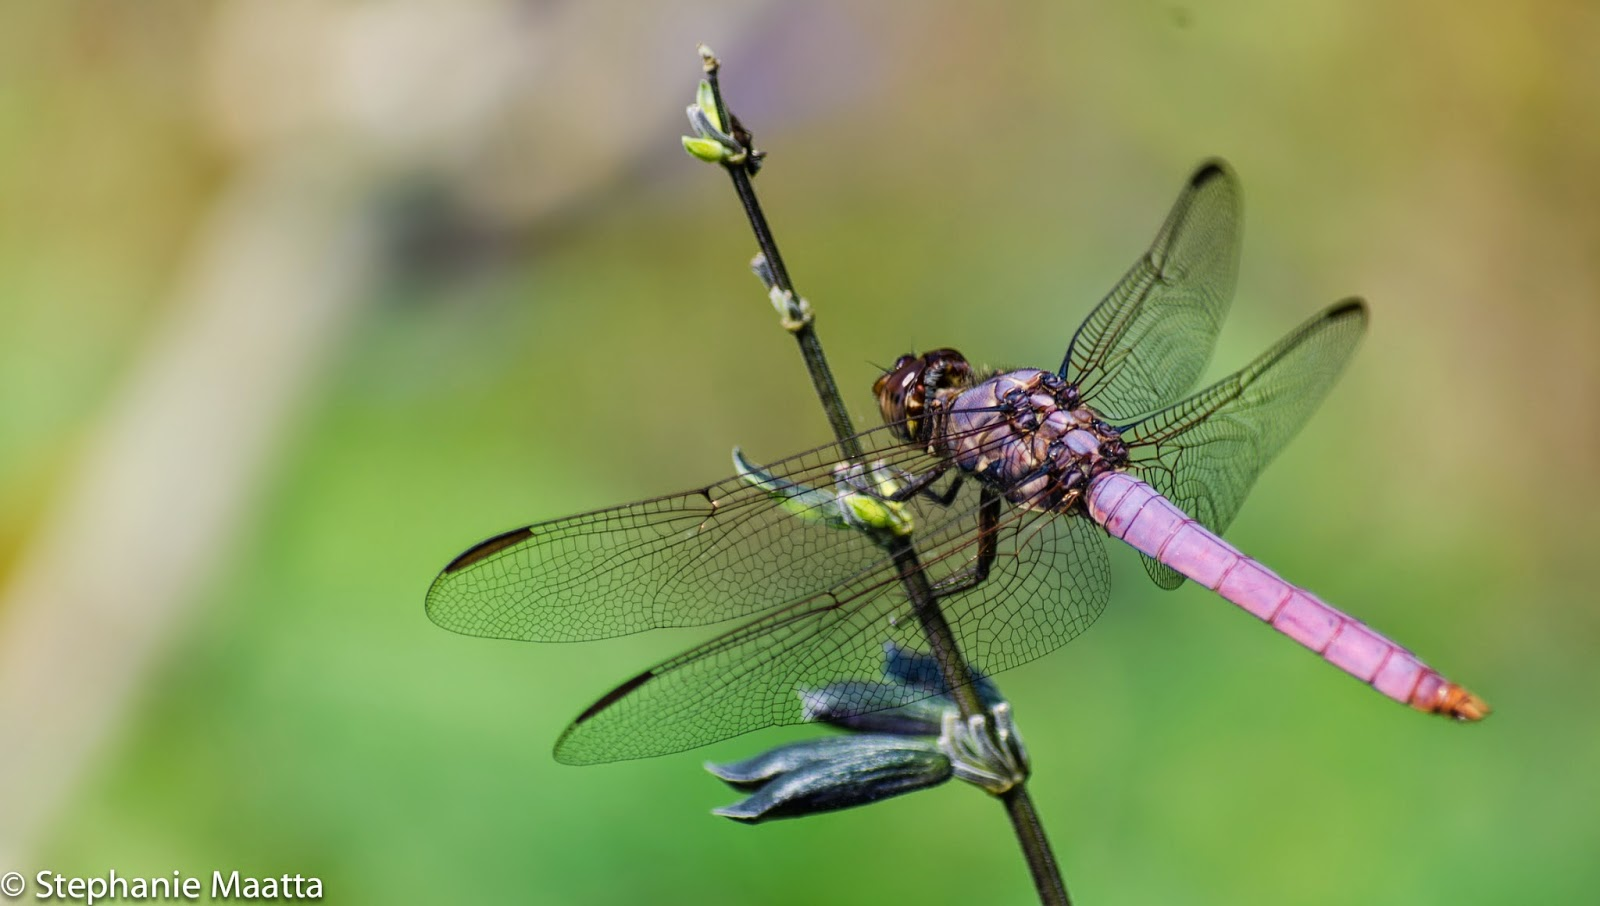 Roseate skimmer dragonfly image